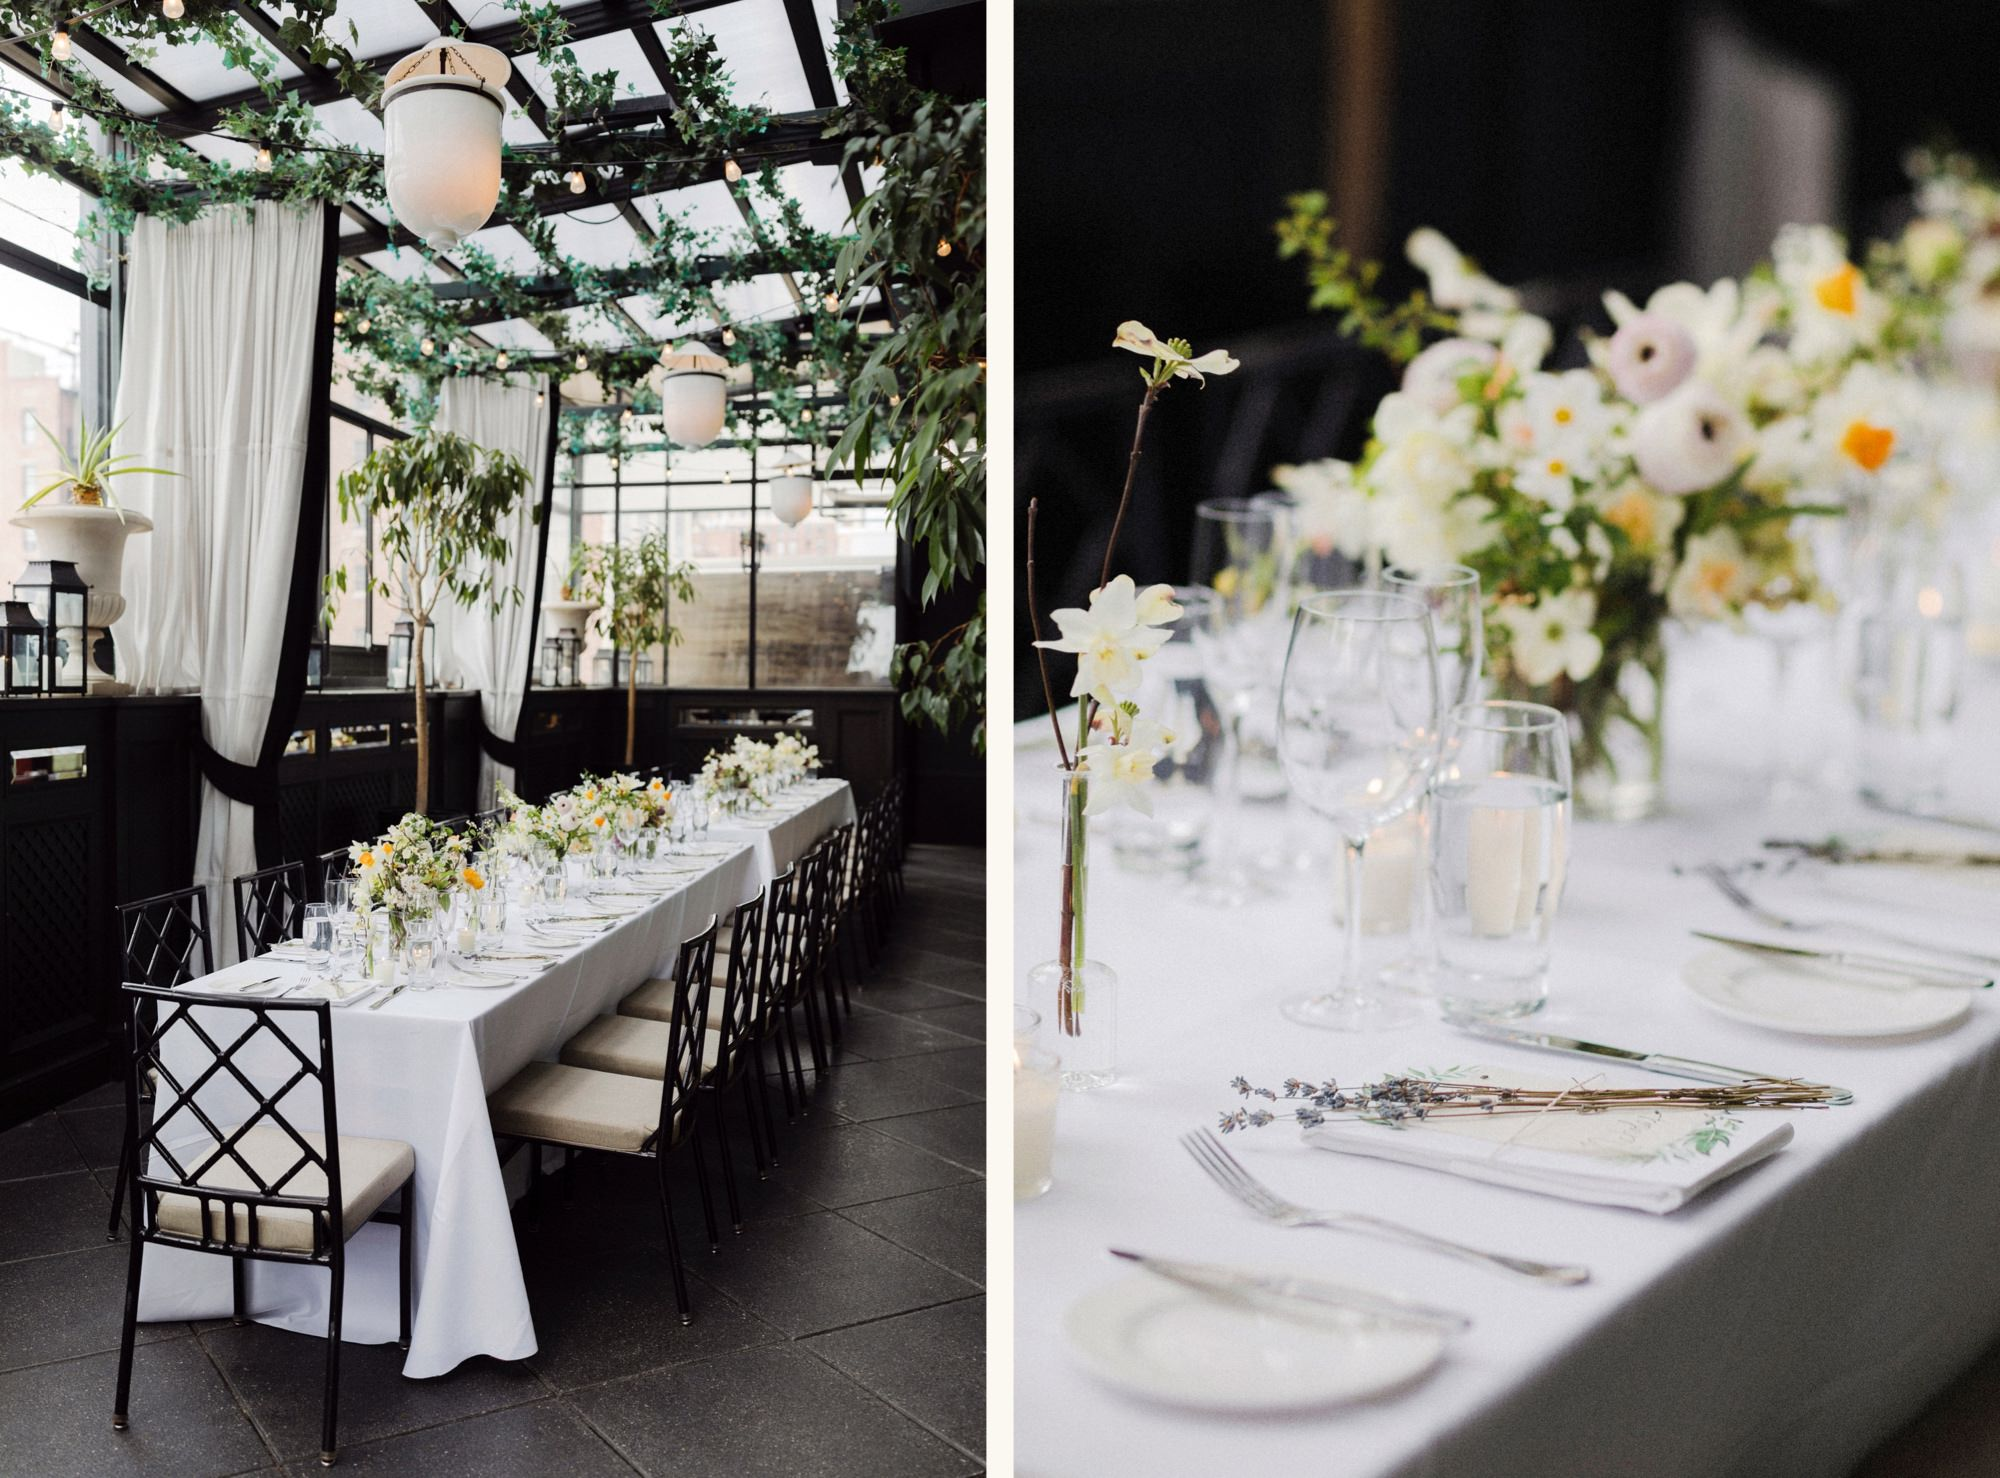 Gramercy Terrace Rooftop lunch wedding reception